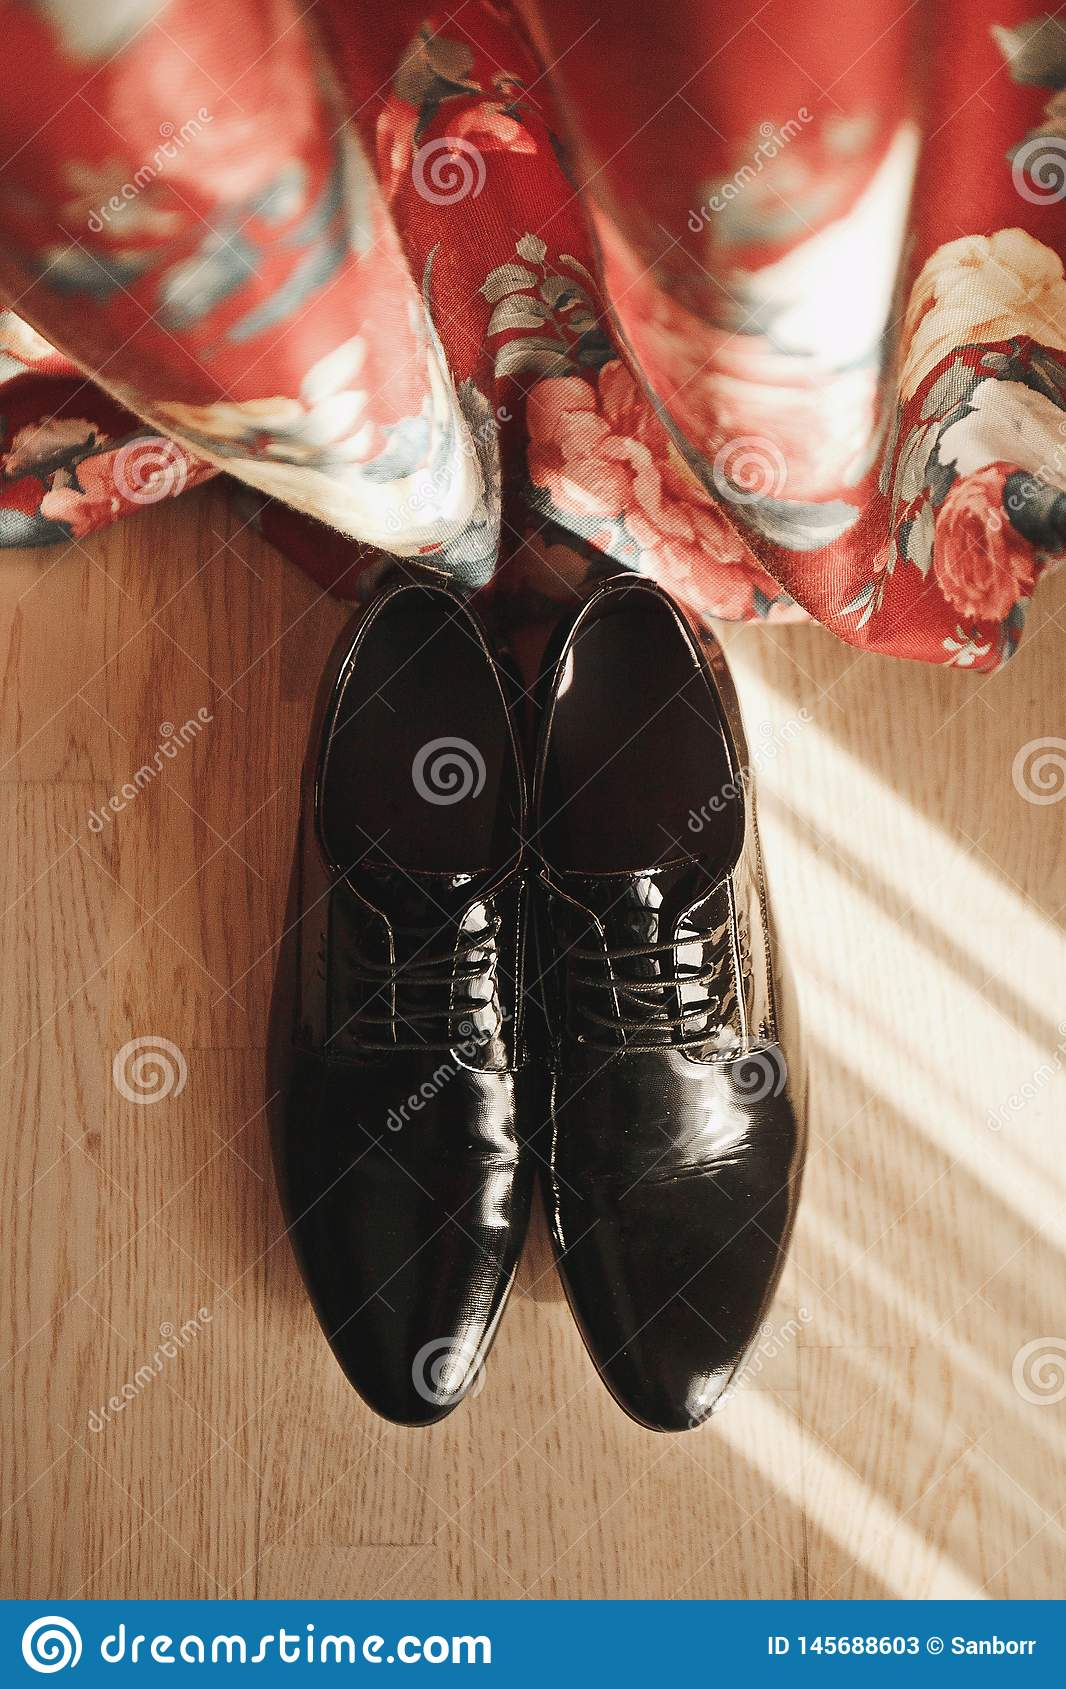 Men`s black leather elegant business shoes on a light floor, on a background of red bright curtains, close-up. New luxury modern